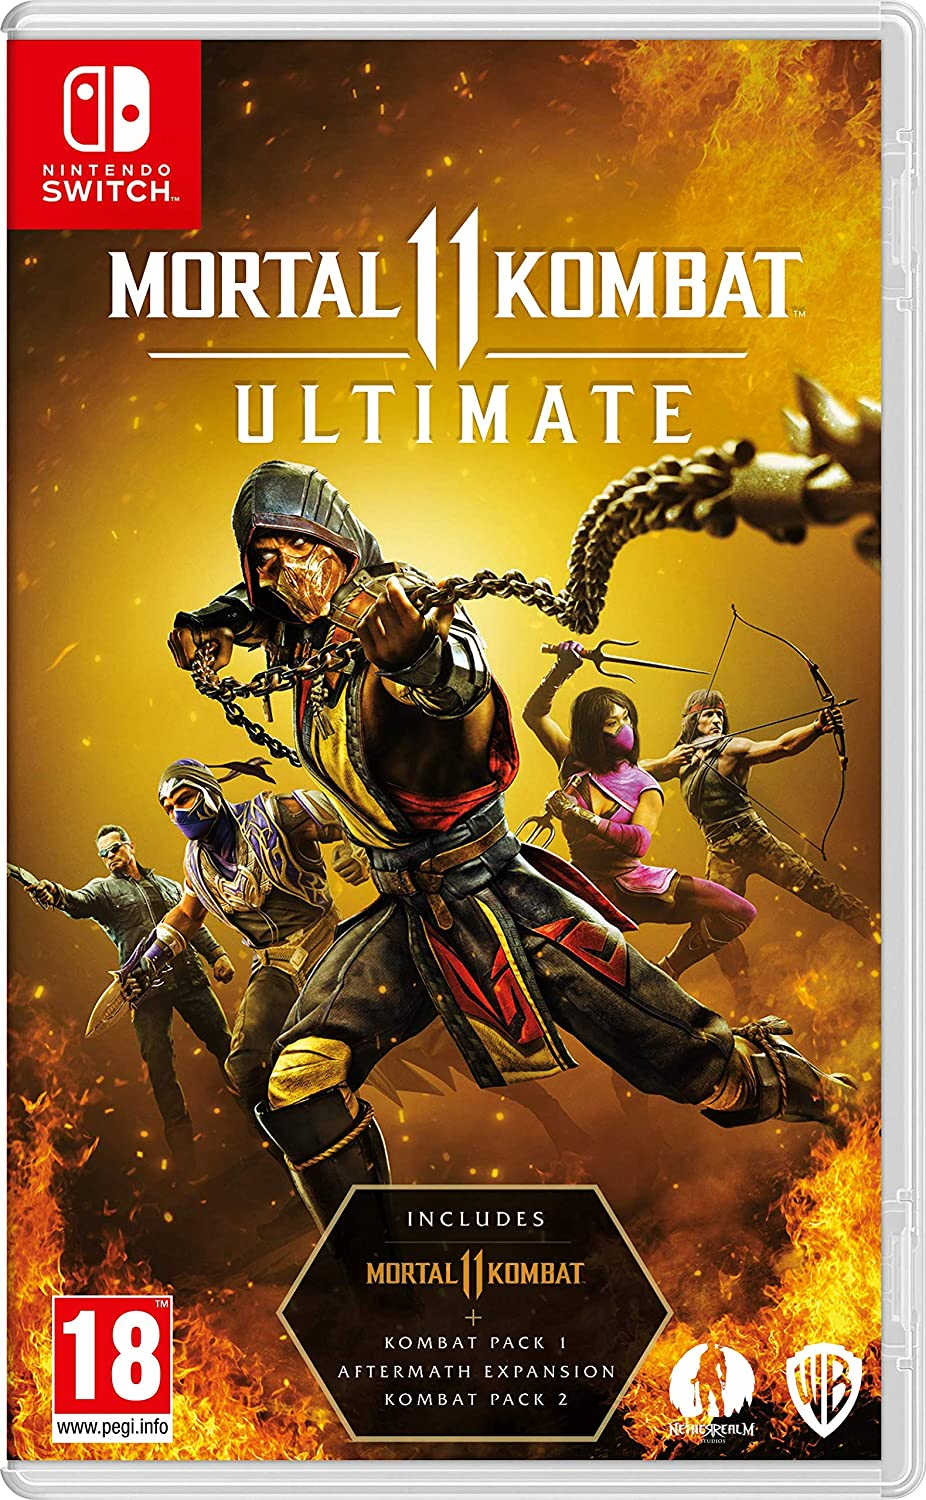 Mortal Kombat 11 Ultimate - Nintendo Switch [Download Code Only No game card is included]